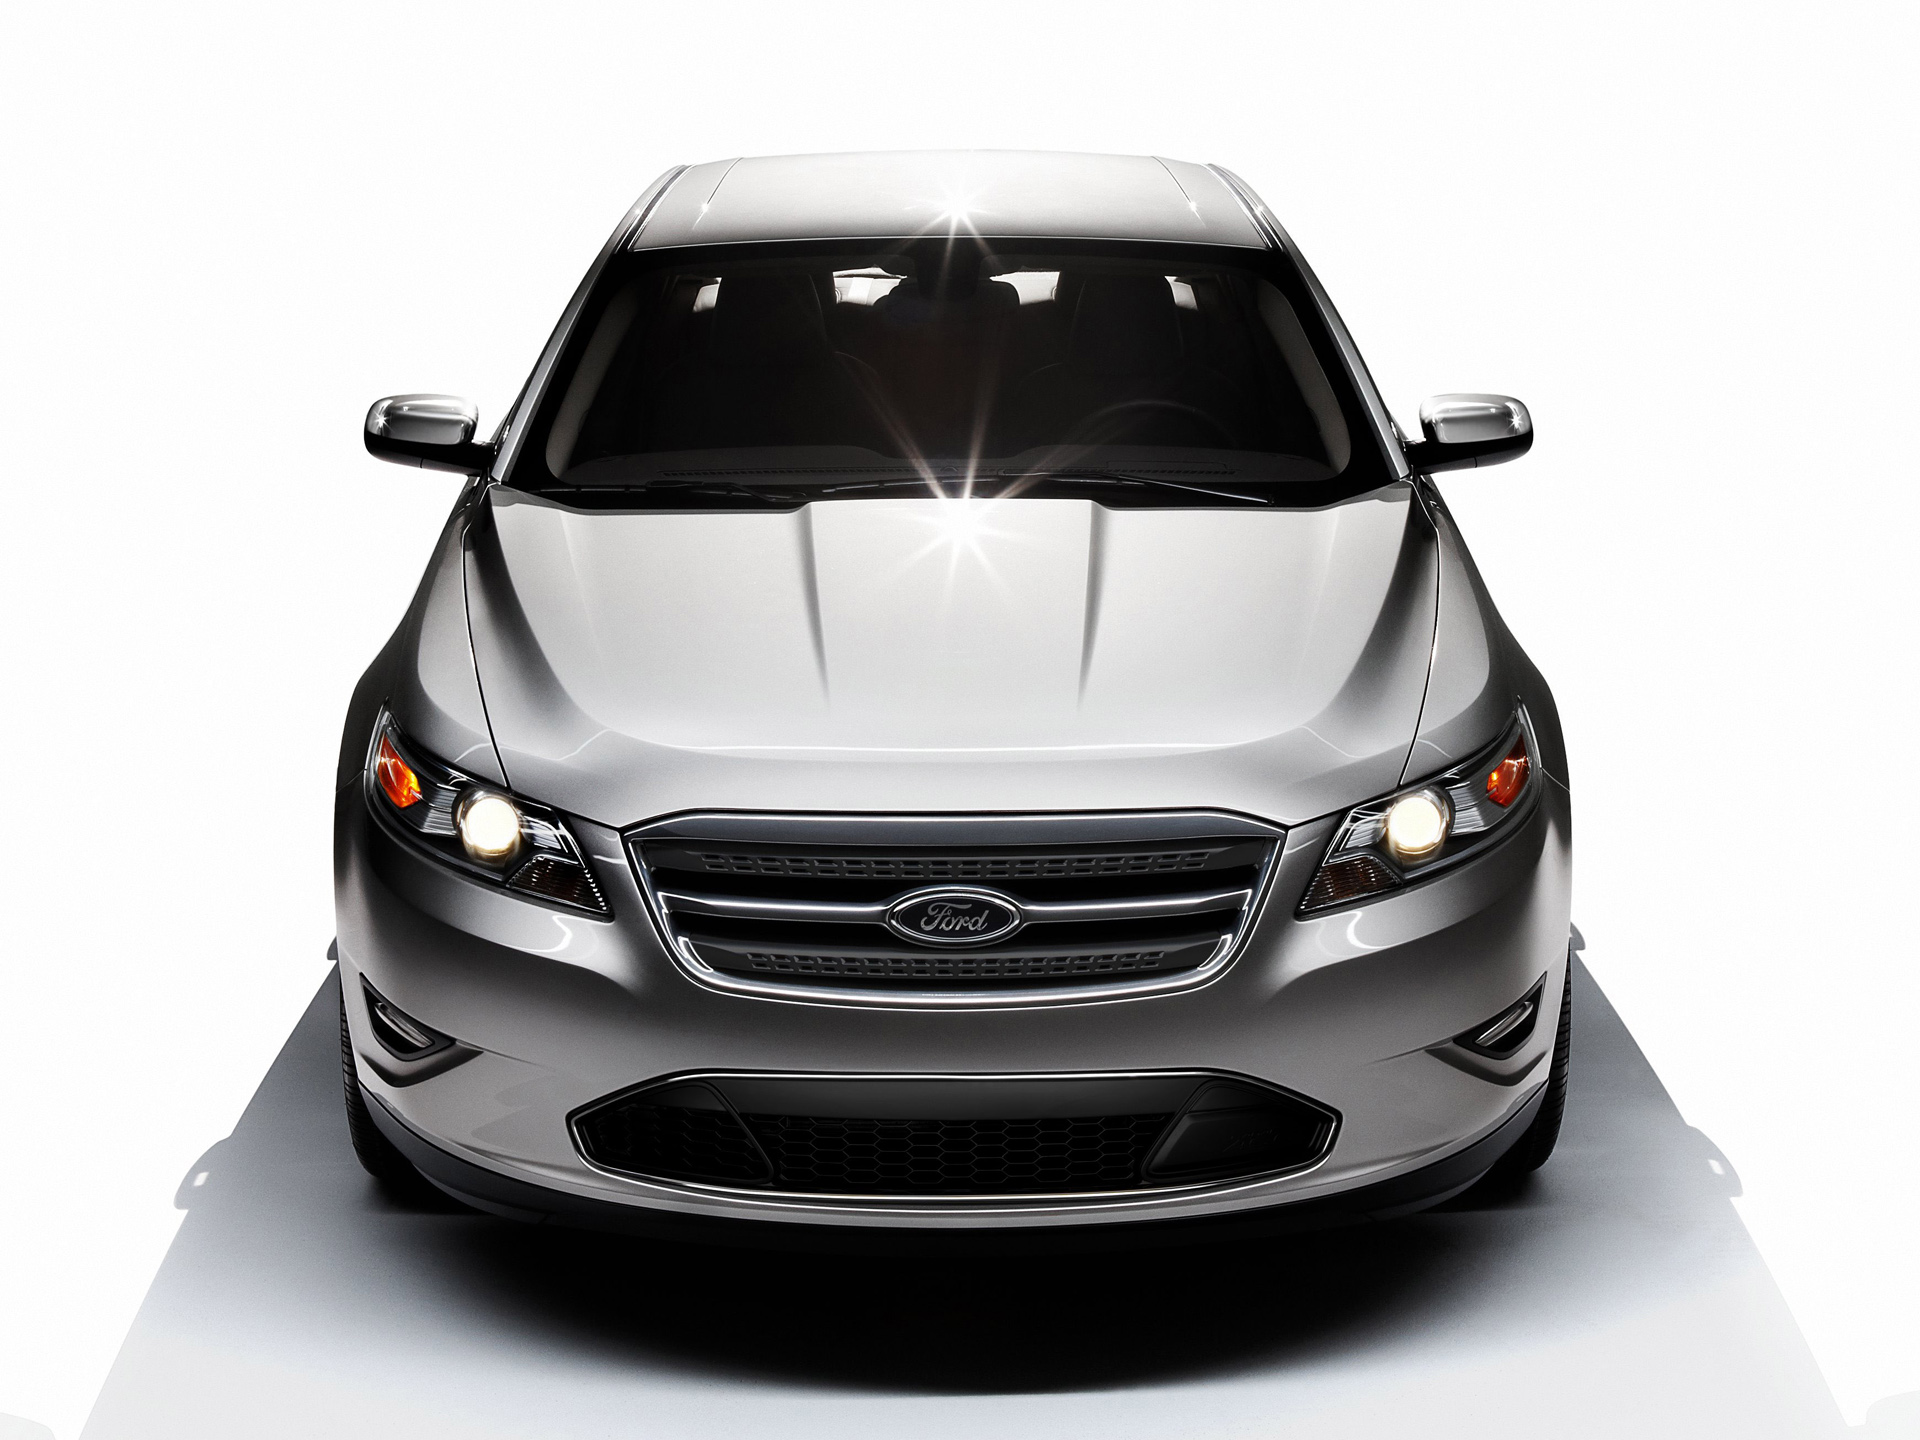 Ford Taurus photo 60592